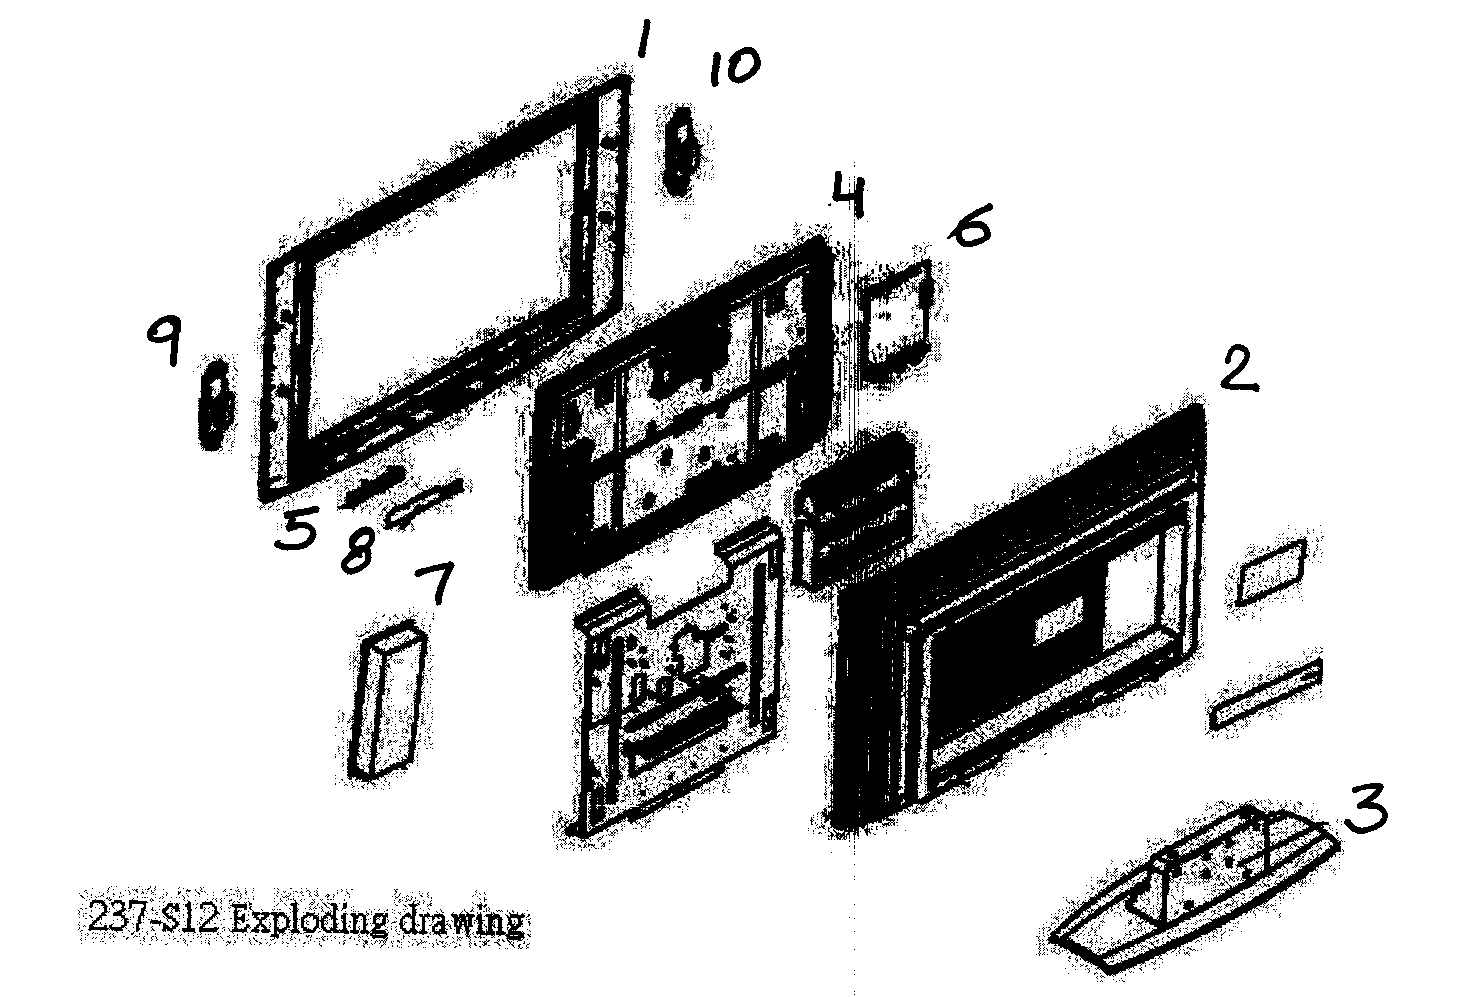 Olevia model 237-S12 lcd television genuine parts